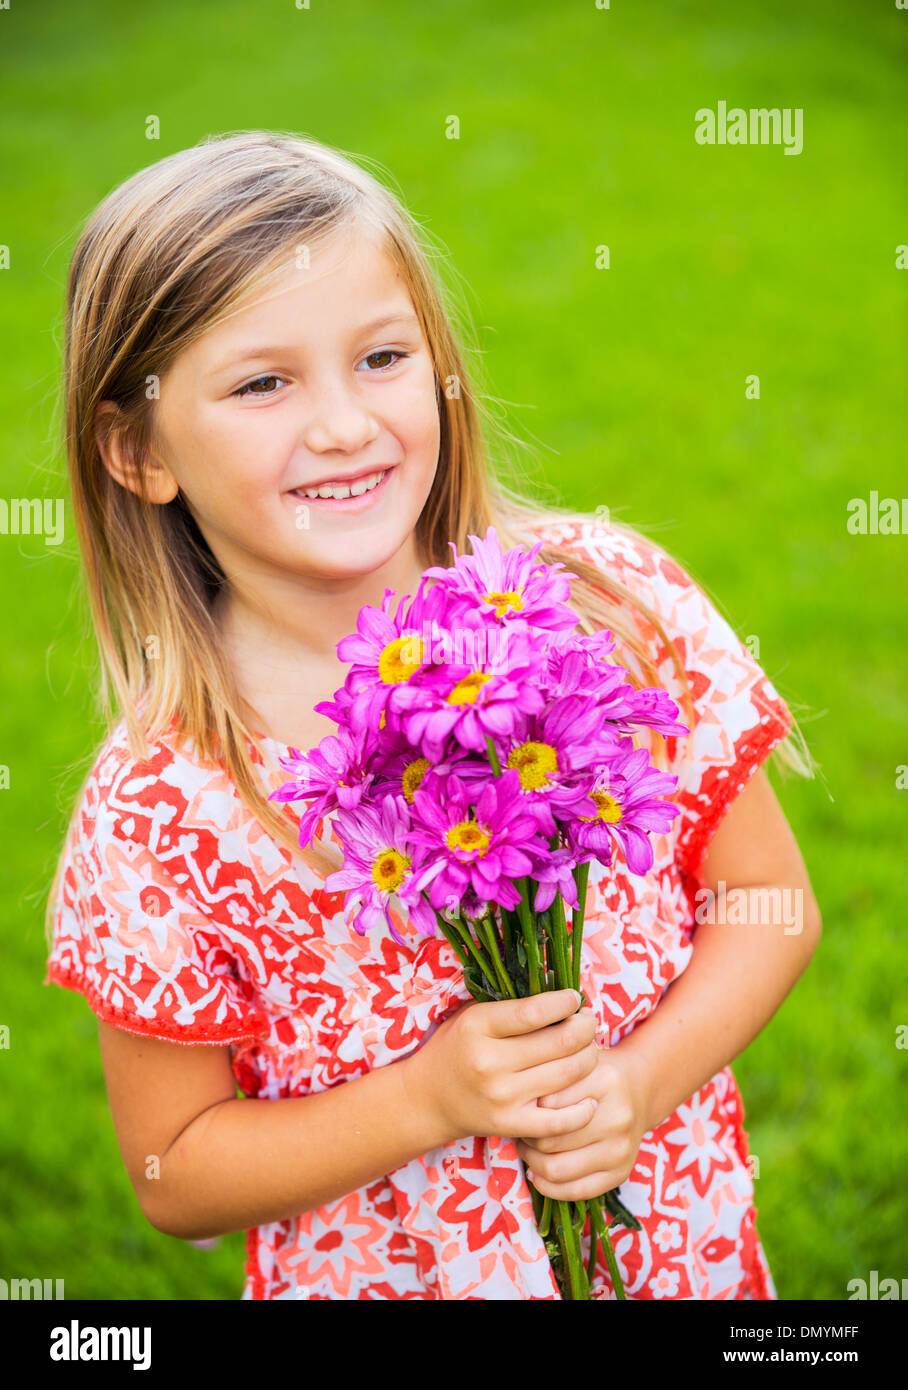 Portrait of a smiling cute little girl with flowers - Stock Image